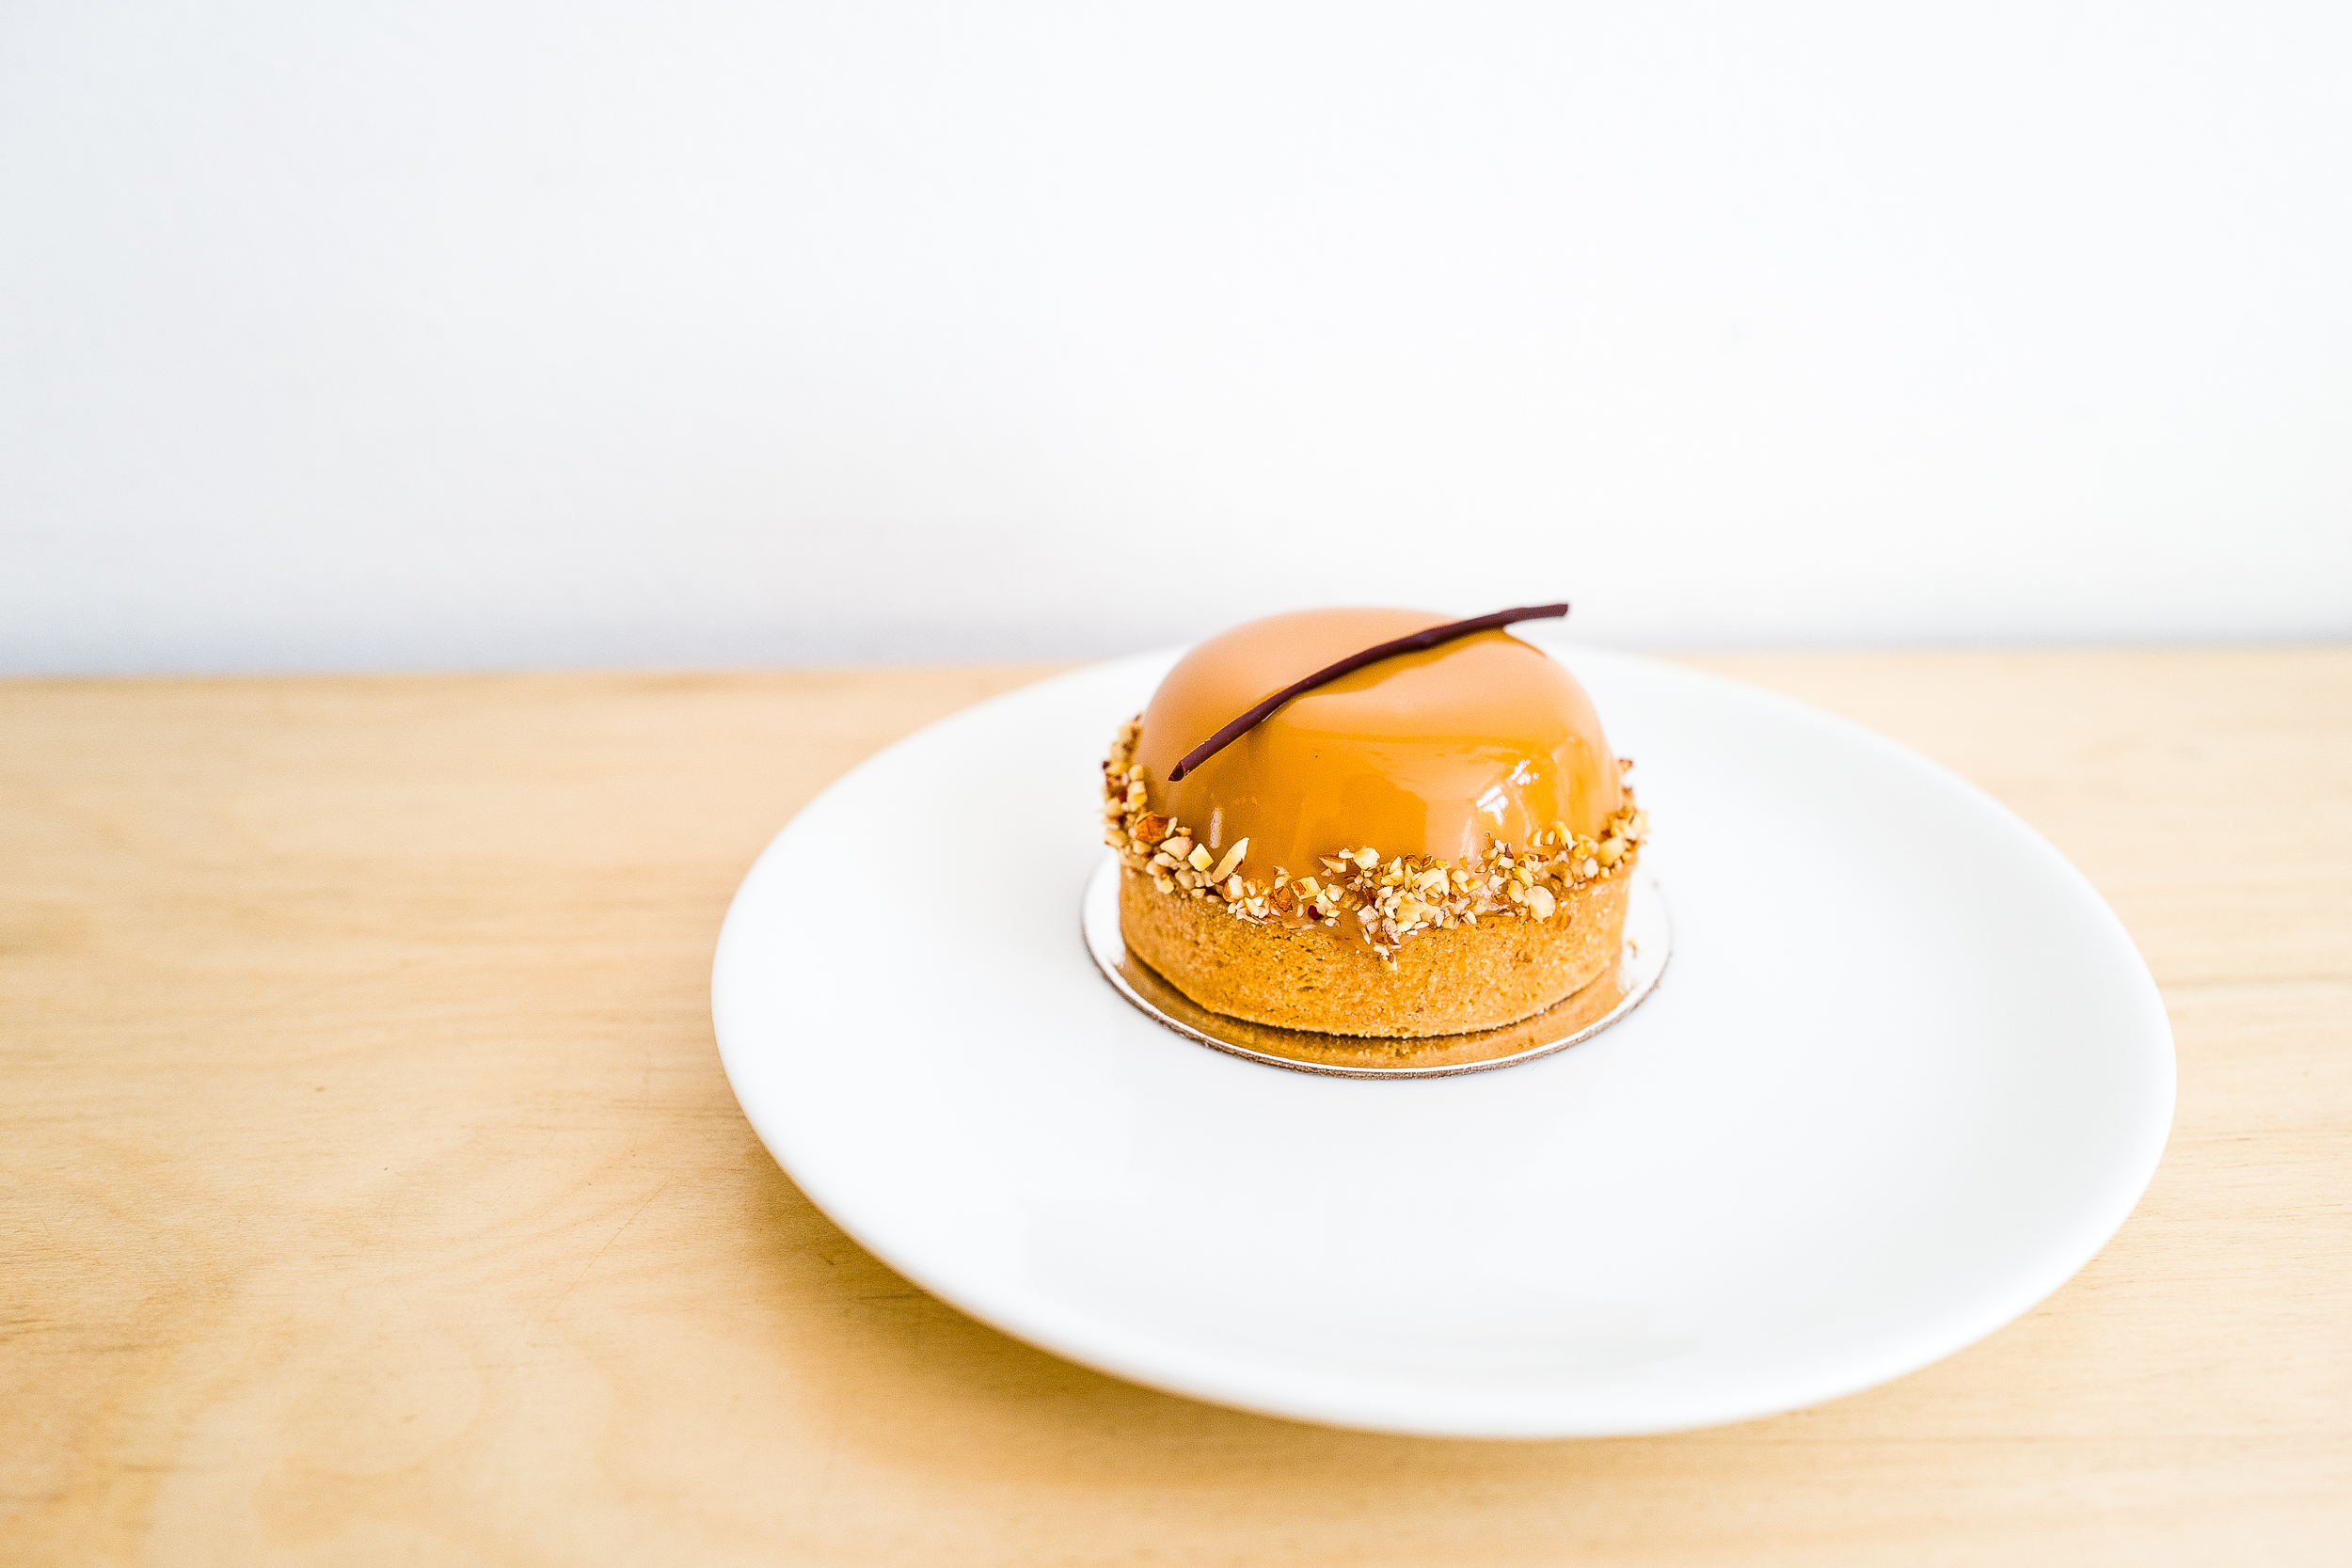 Turtle Tart: milk chocolate mousse, rum-soaked chocolate biscuit, salted caramel, and candied pecans.